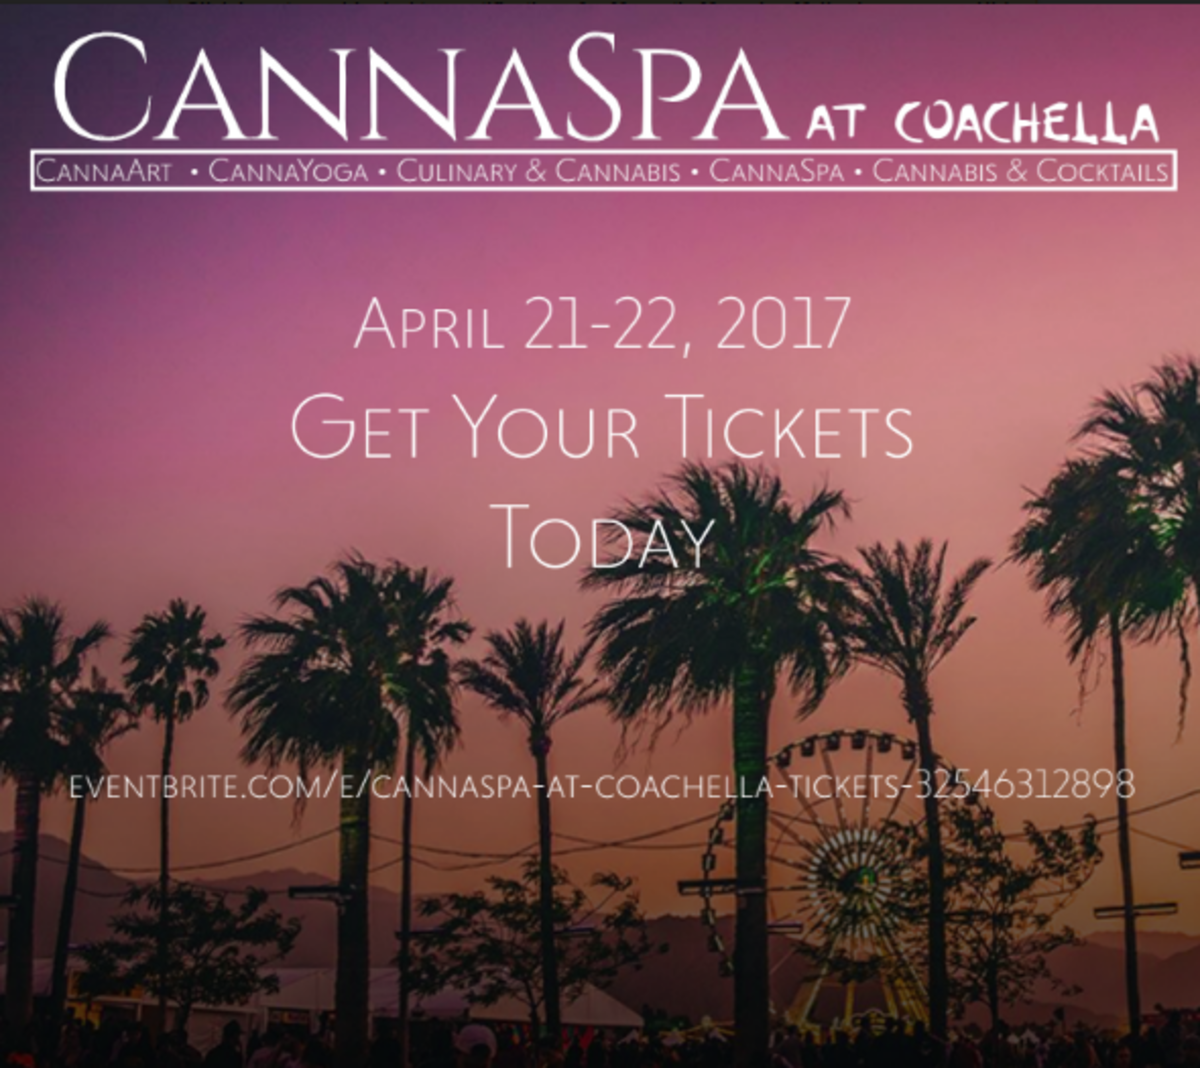 Pay-to-play: for the cannabis curious...now there is an infused eat, drink & relax spa for you...